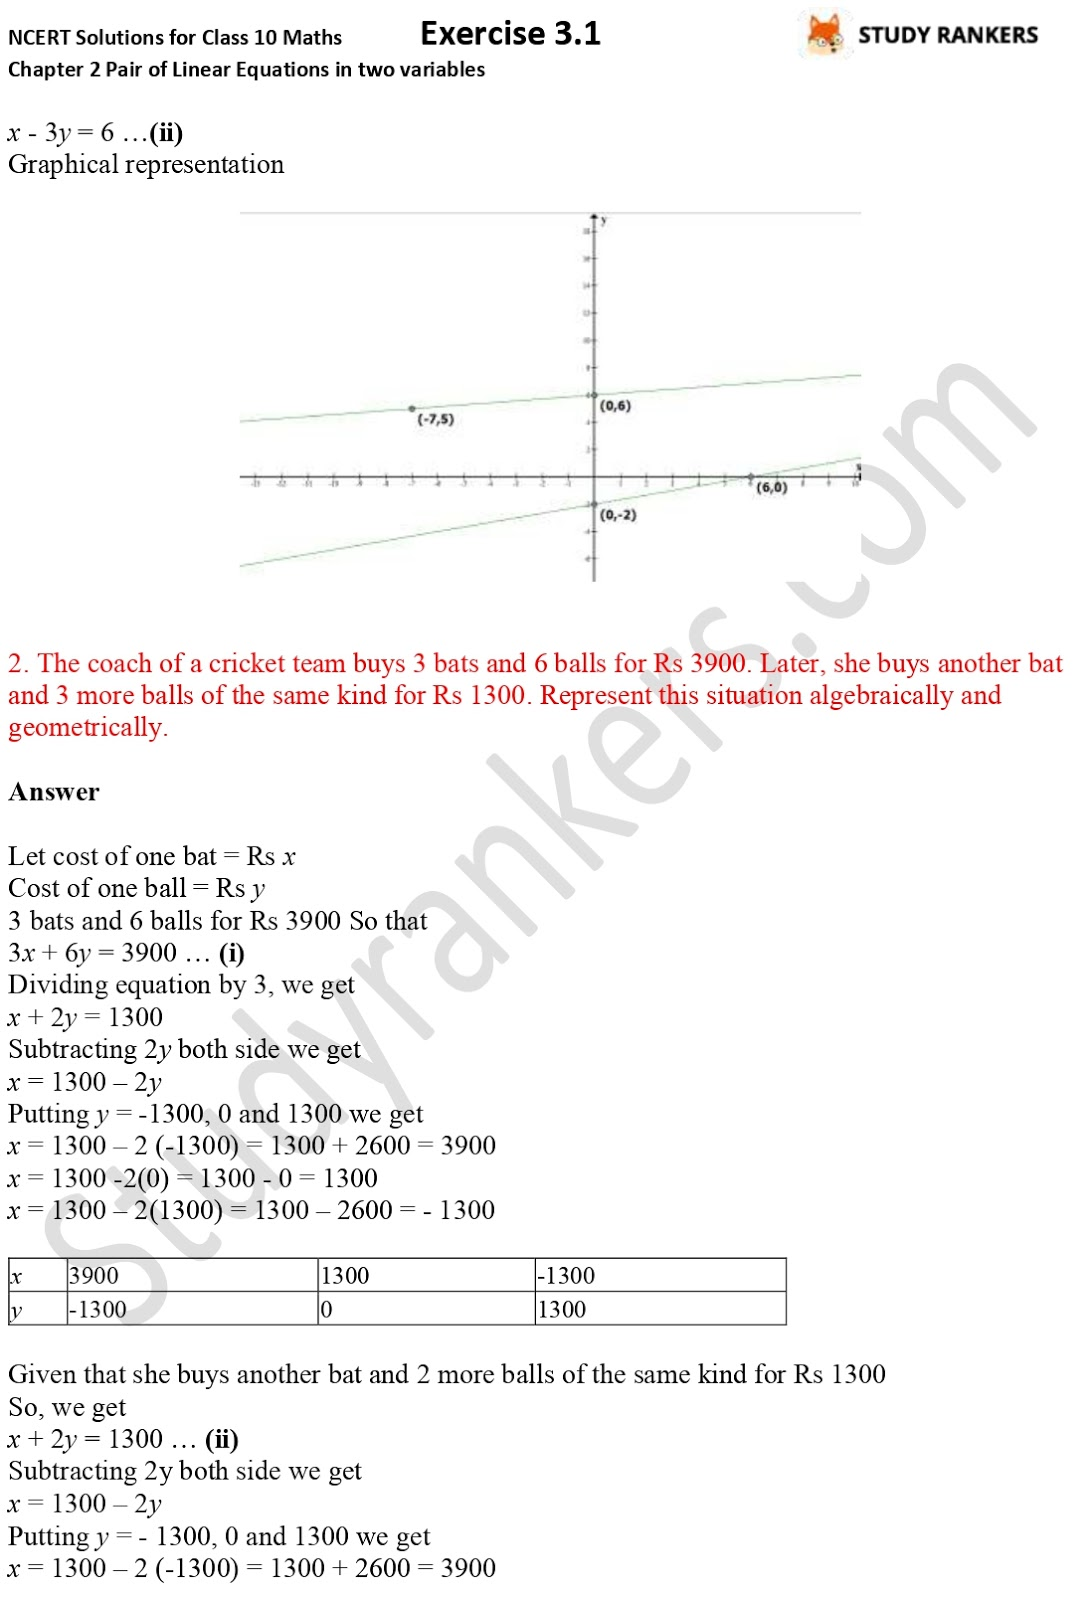 NCERT Solutions for Class 10 Maths Chapter 3 Pair of Linear Equations in Two Variables Exercise 3.1 Part 2